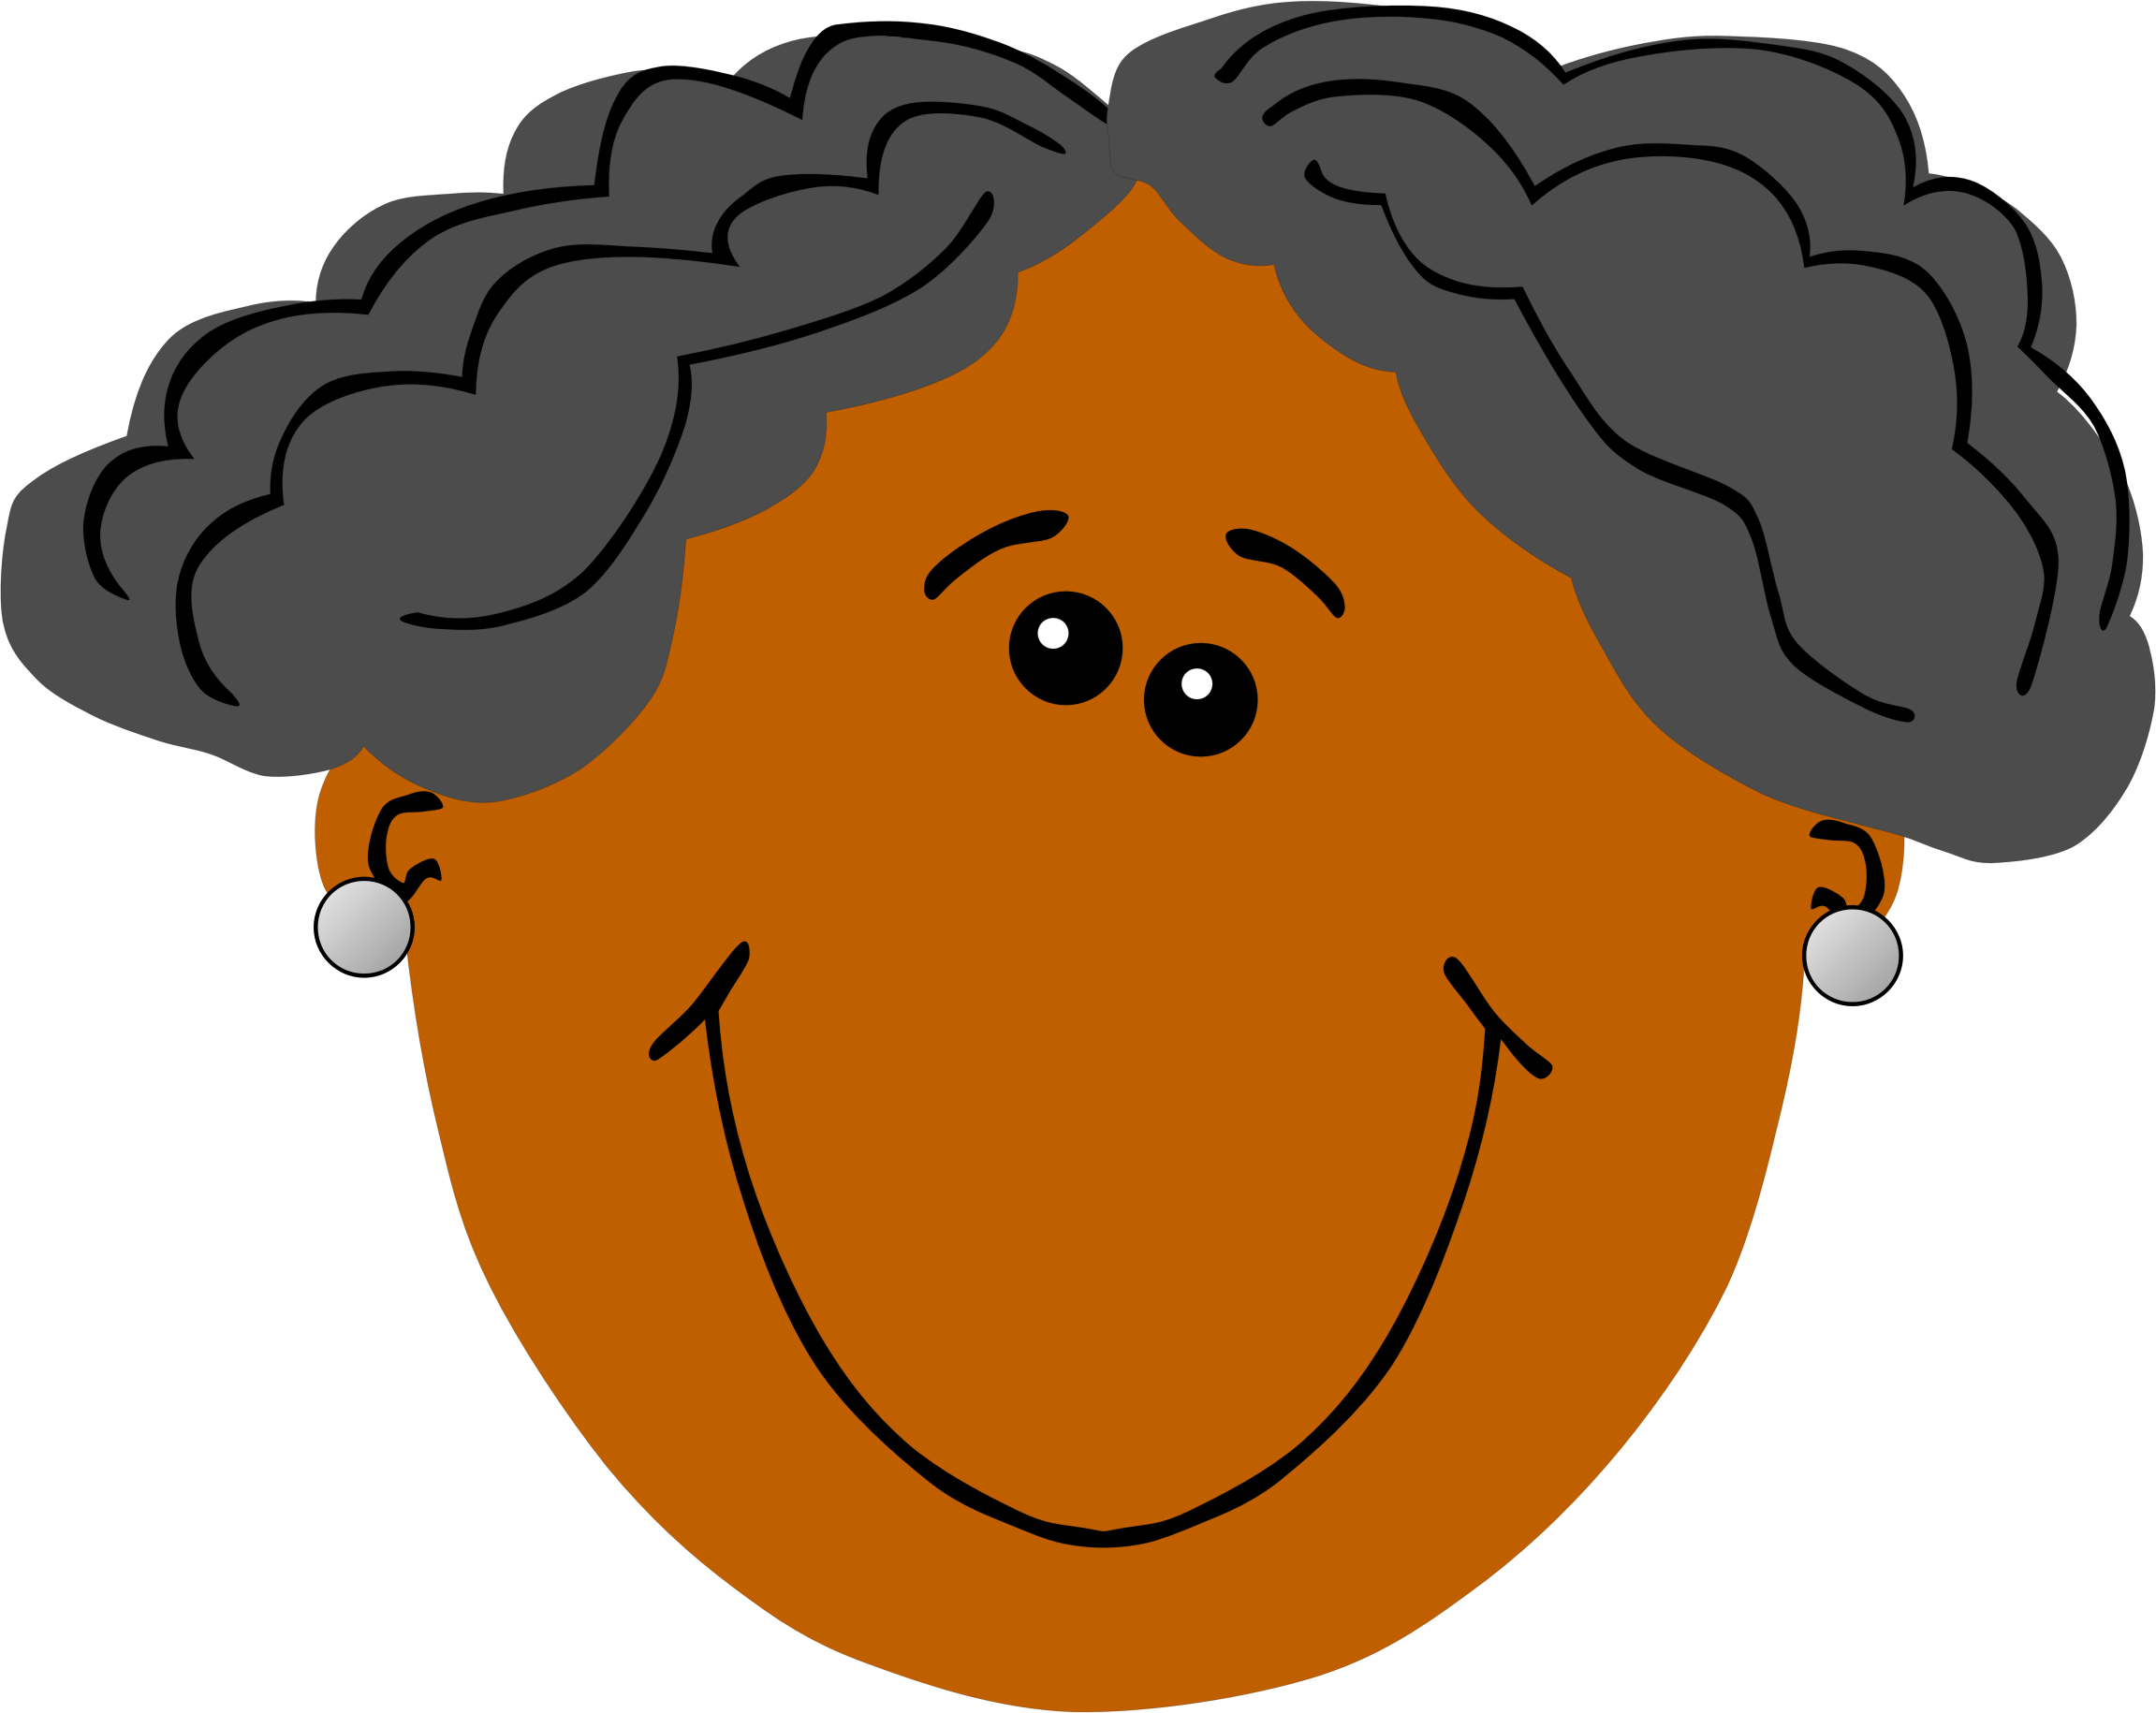 African clipart grandmother, African grandmother Transparent.